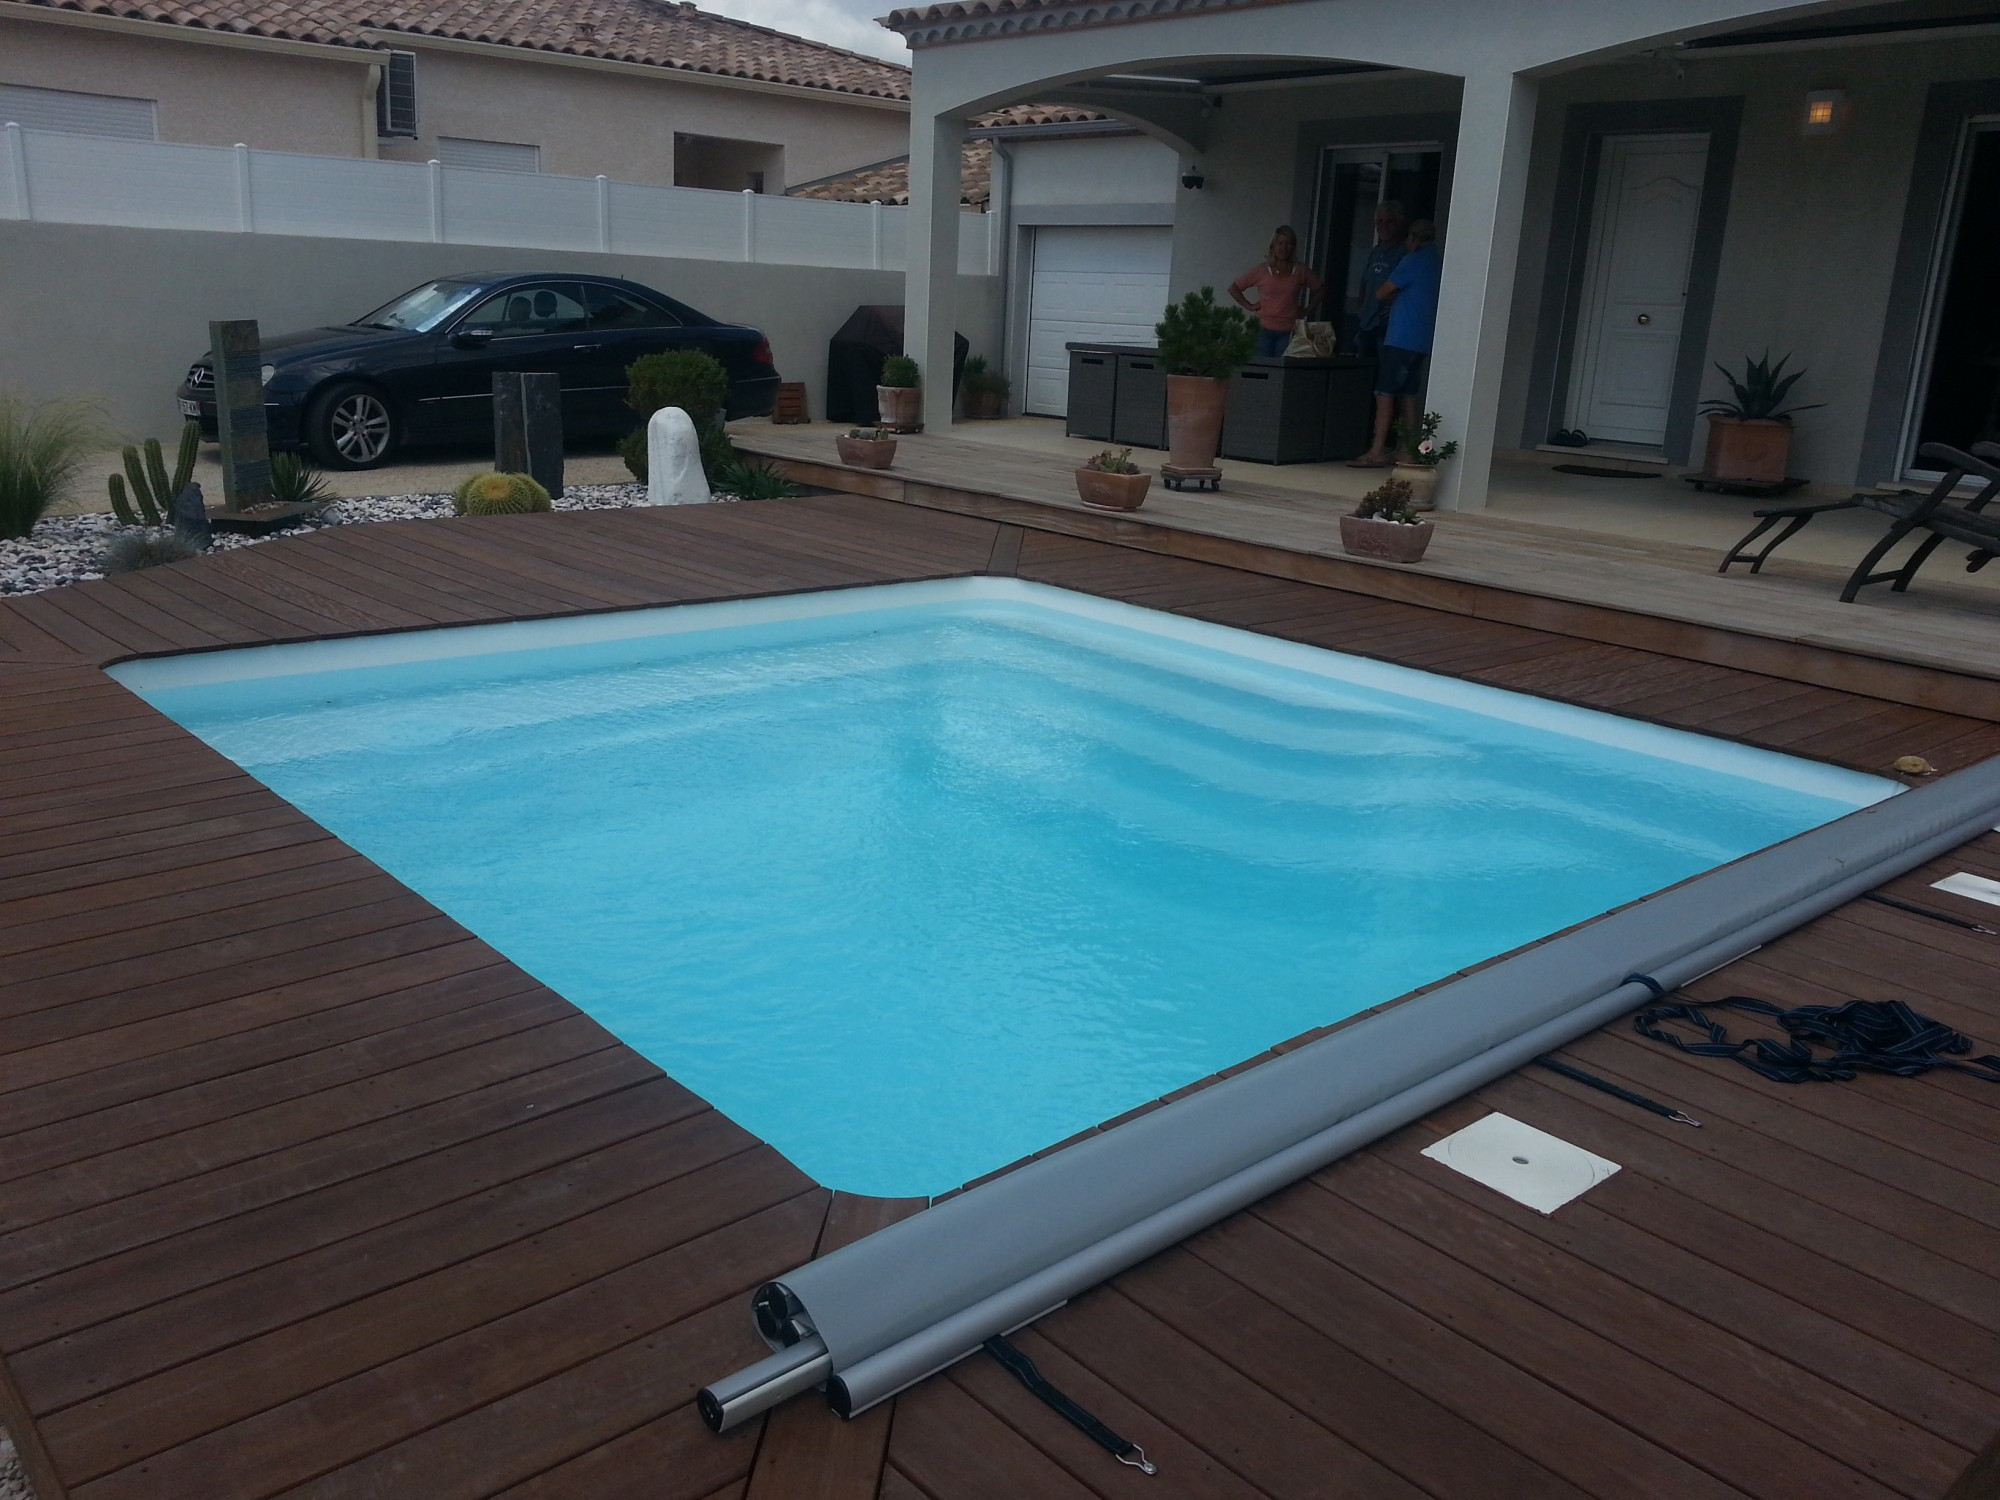 Am nager sa piscine coque polyester piscine polyester for Coque piscine polyester